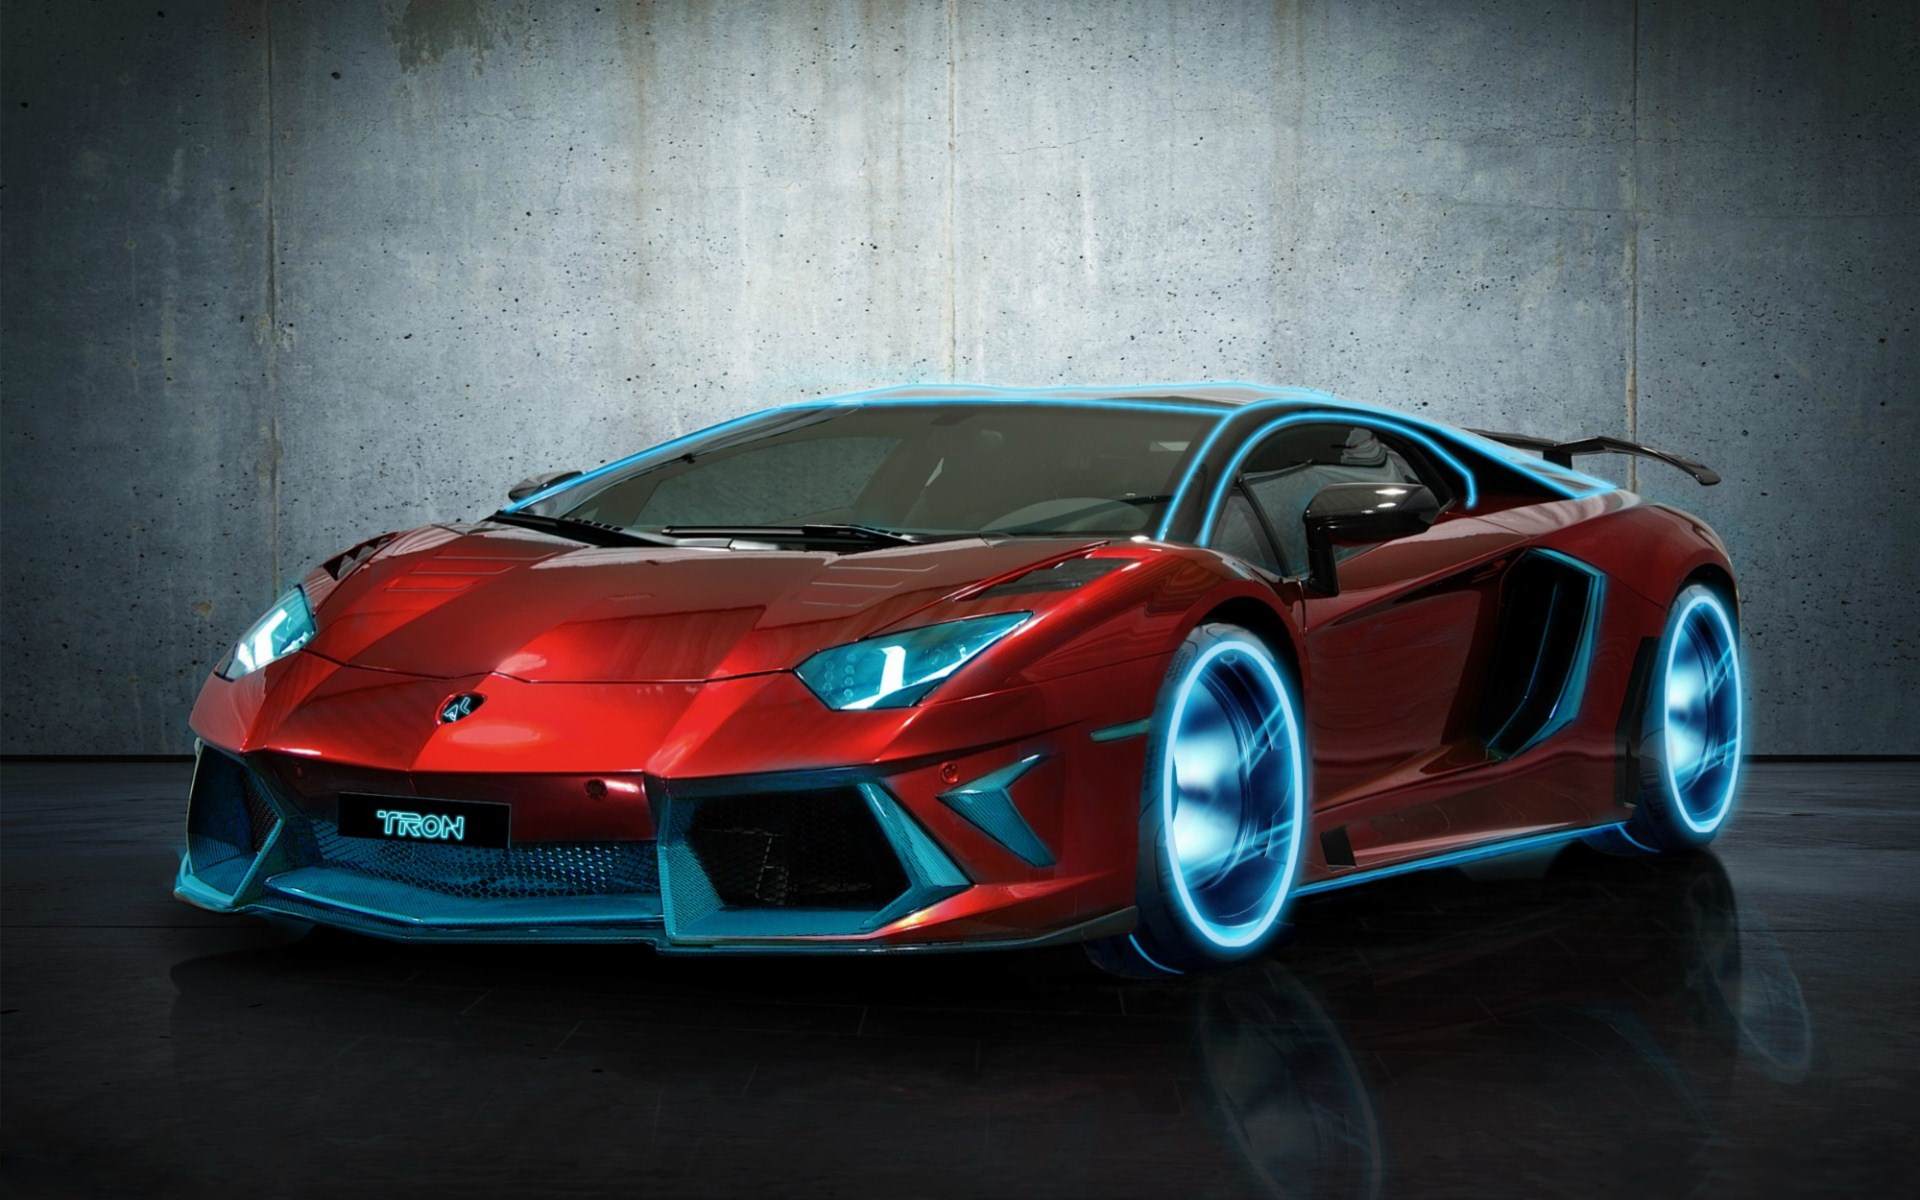 File Name : Lamborghini Aventador HD Wallpaper Desktop 1593